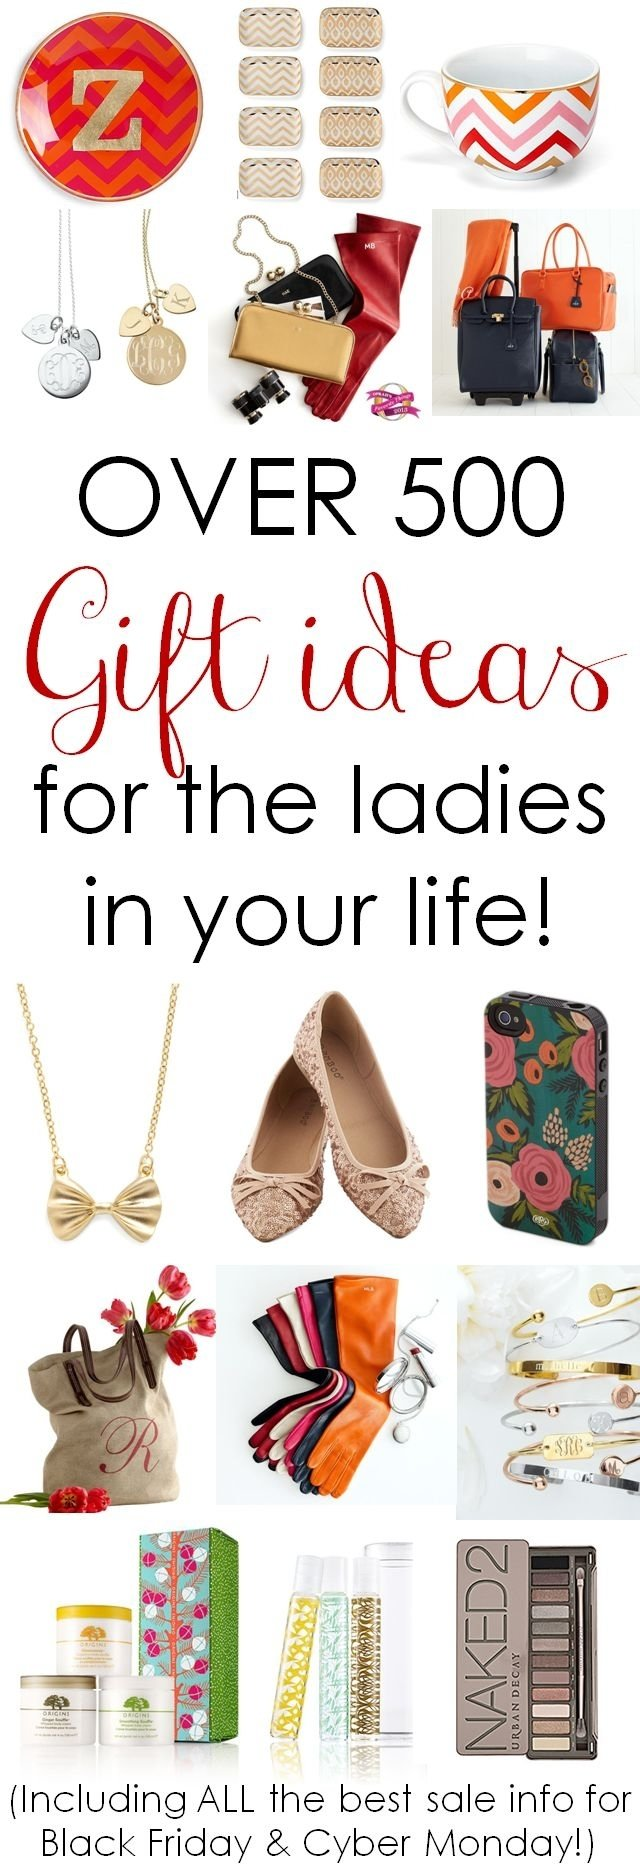 10 Great 2013 Gift Ideas For Women 33 best deals discounts giveaways freebies images on pinterest 3 2020